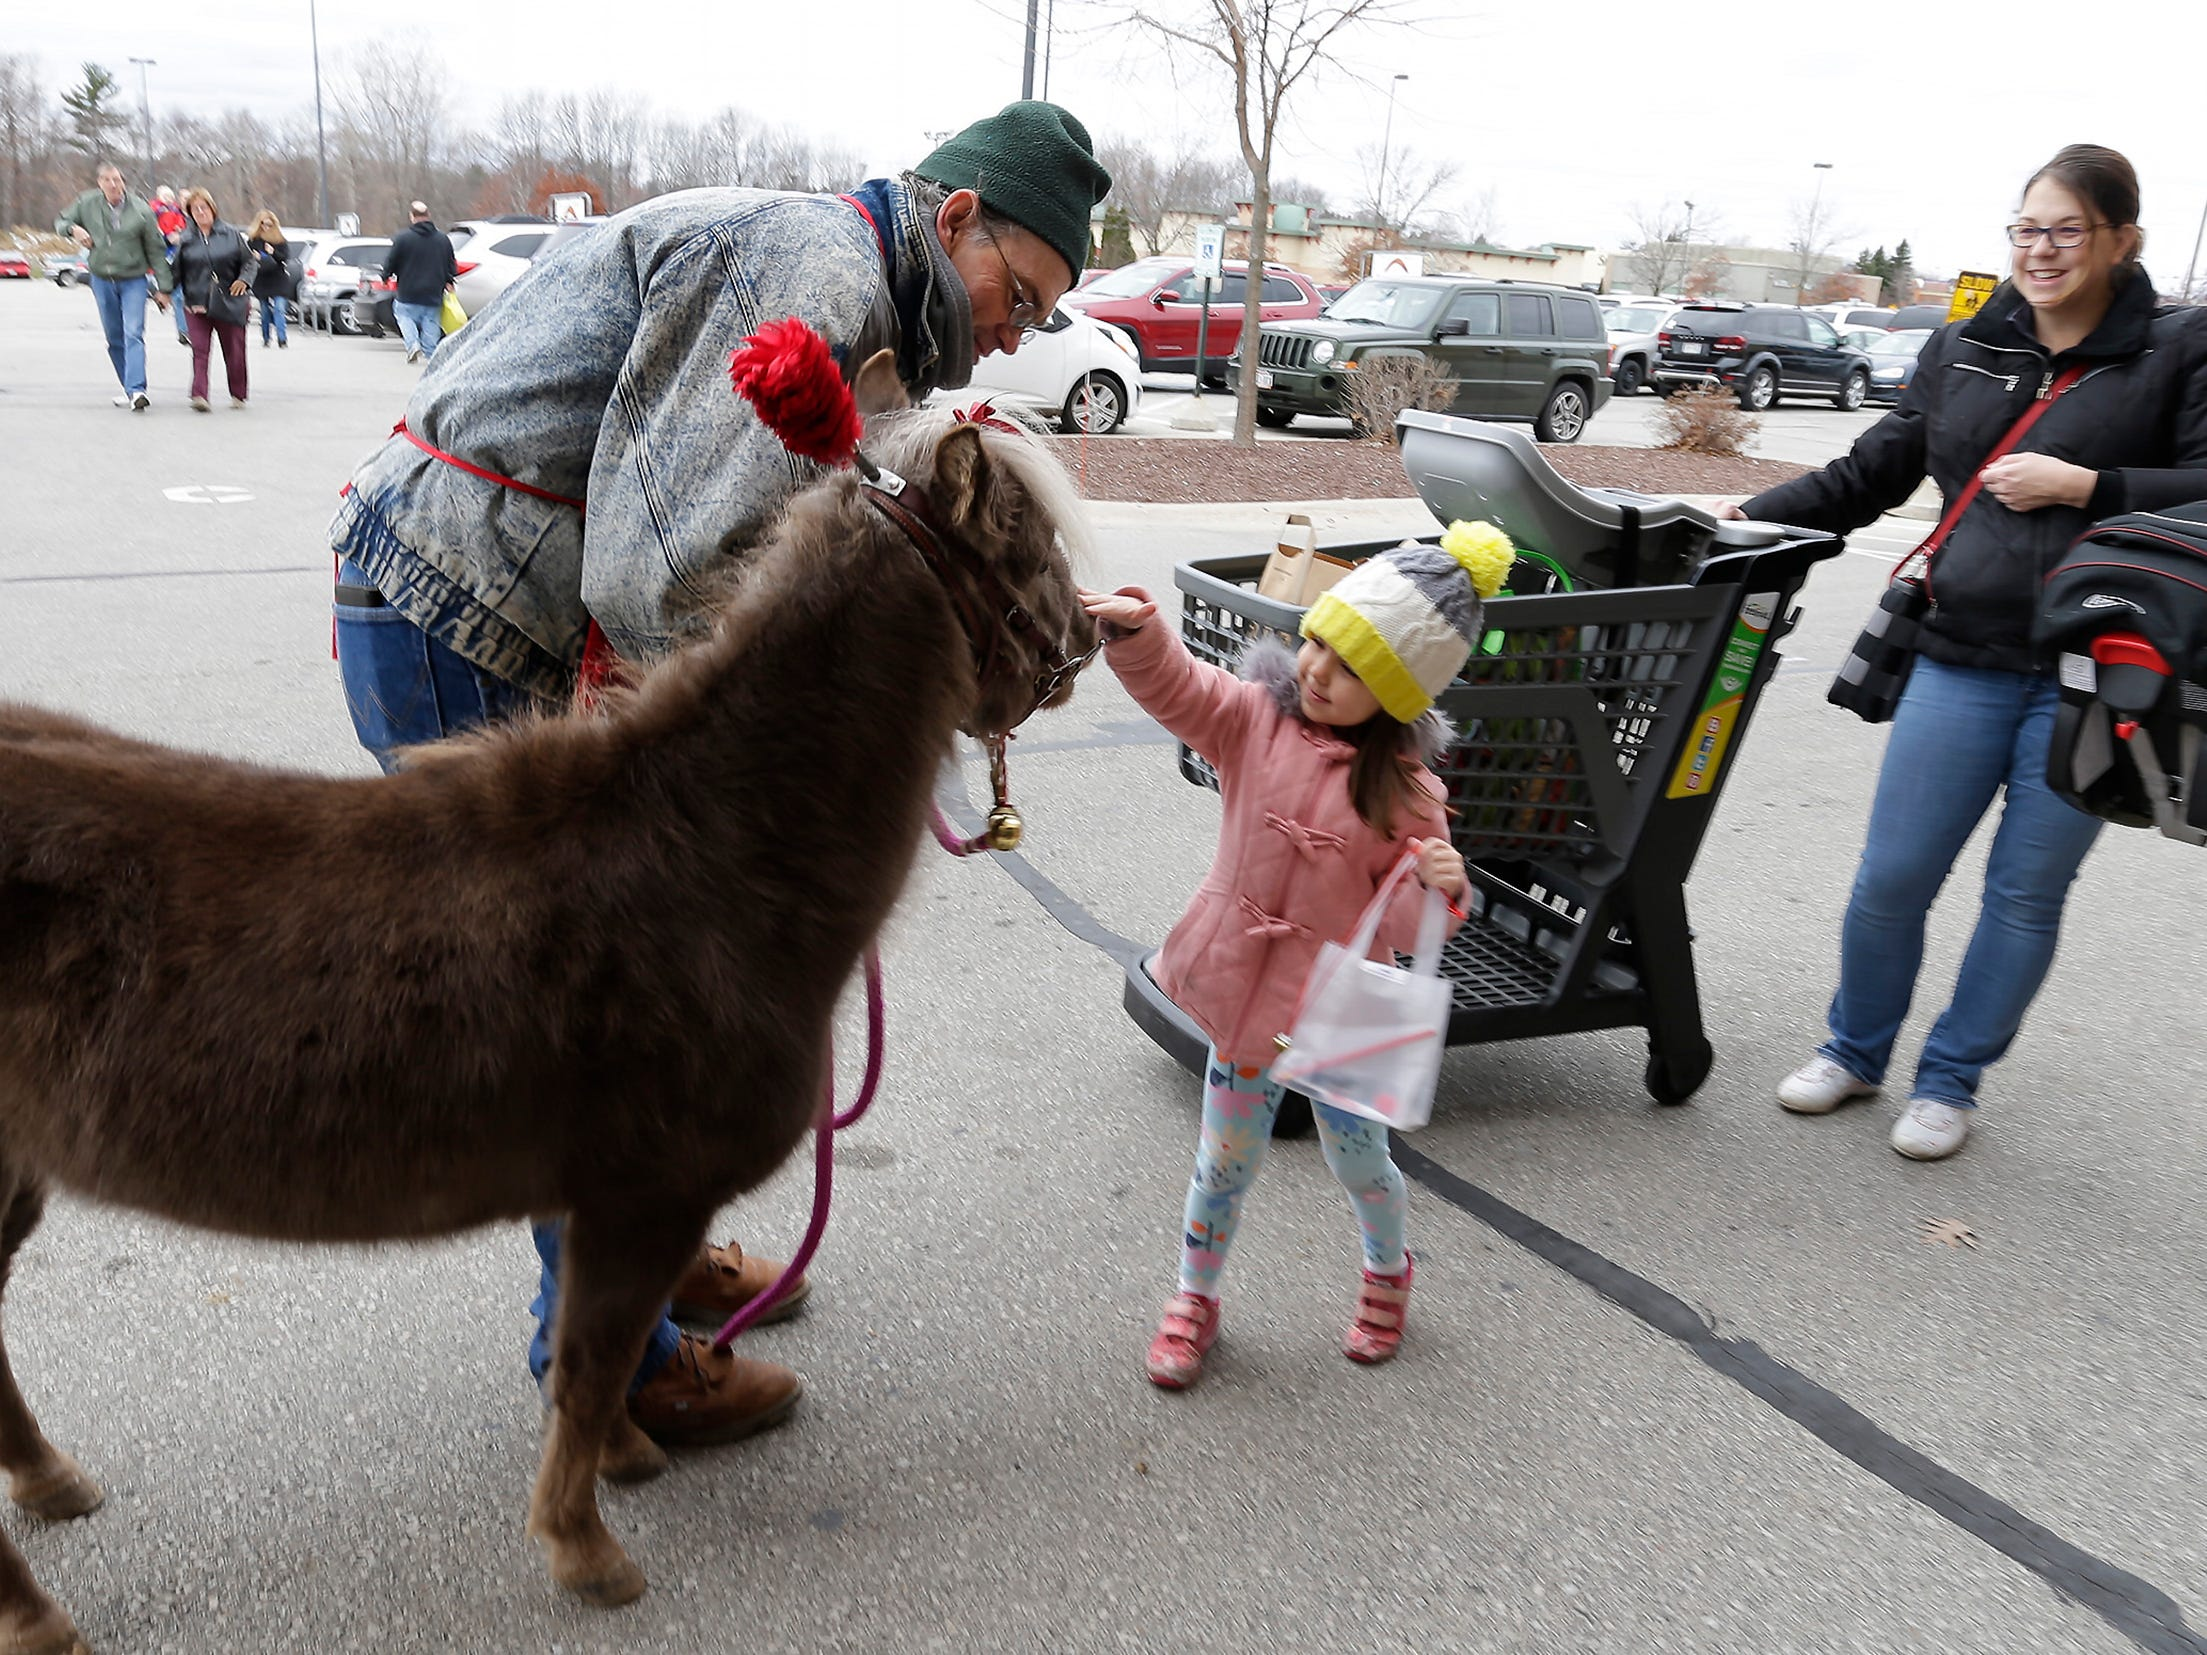 Mini-horse Mr. T and handler Mark Webb, let Isabel Kultgen, 4, pet the horse as mom Crystal observes at Festival Foods, Saturday November 17, 2018, in Sheboygan, Wis. The horse and Webb was part of the Salvation Army's Red Kettle Campaign kickoff.